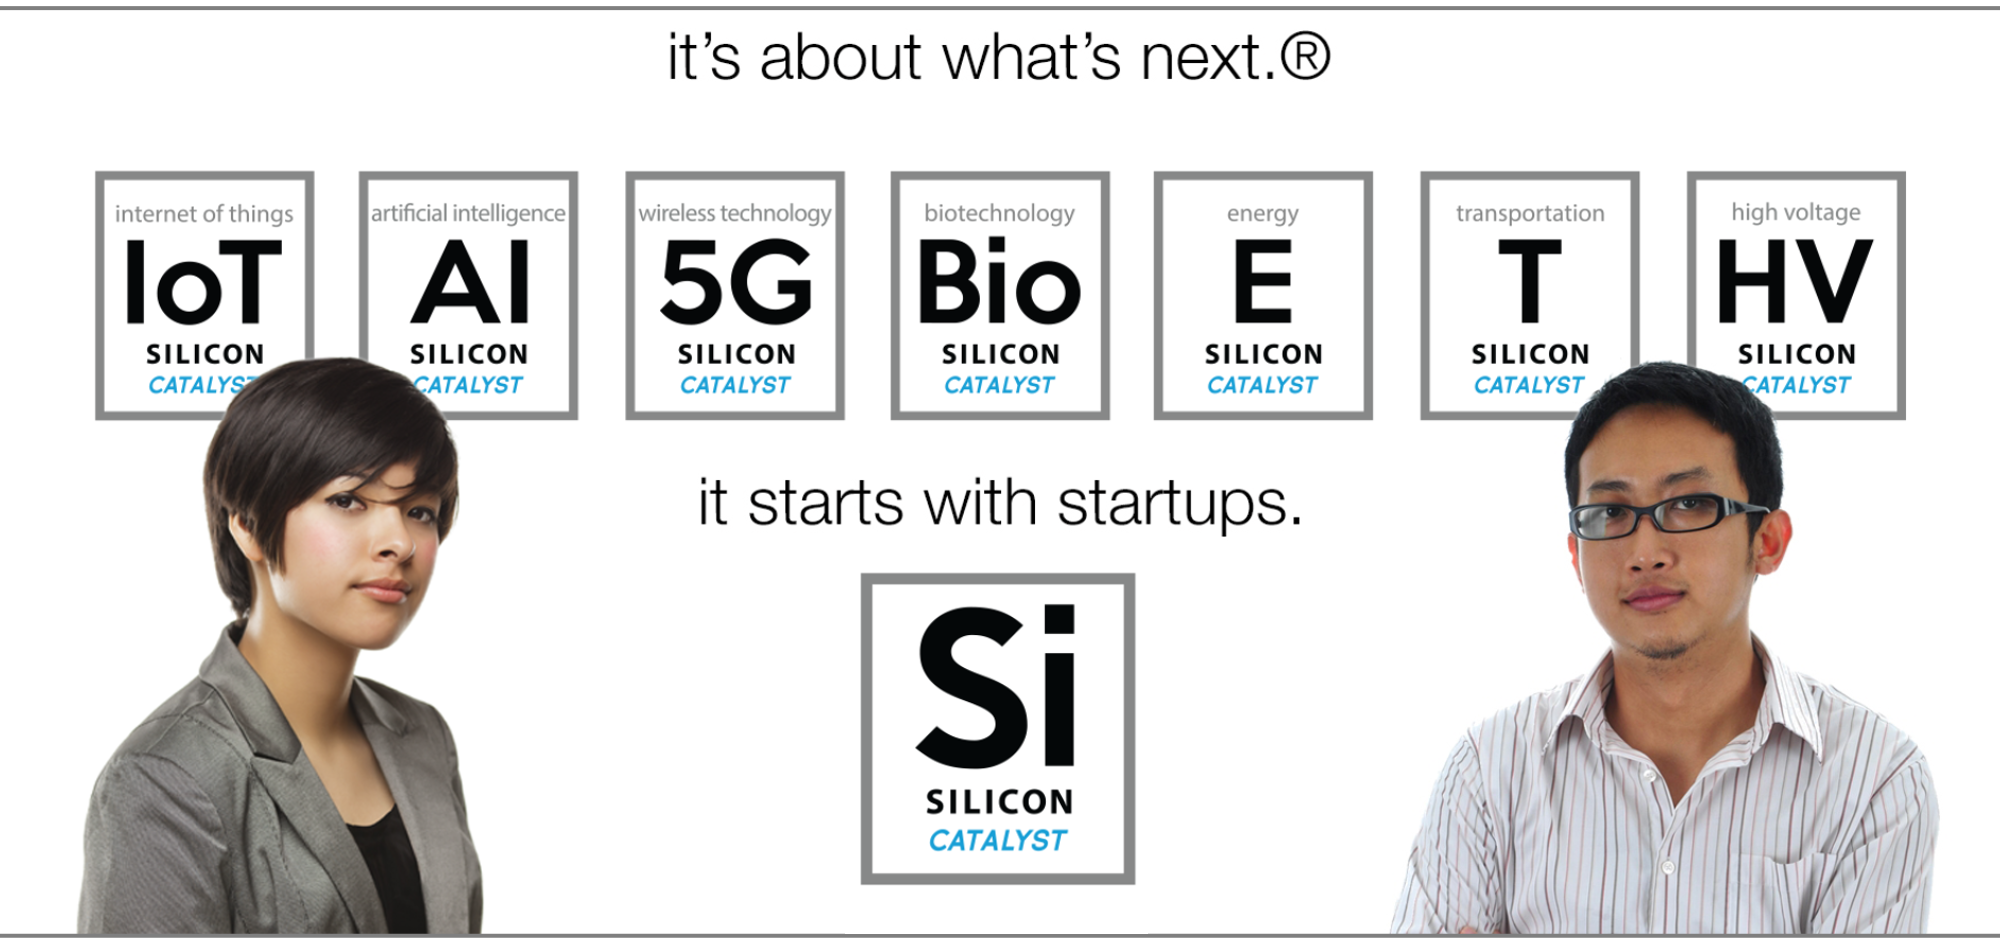 Chip Start Ups are Succeeding with Silicon Catalyst and Partners Like Arm